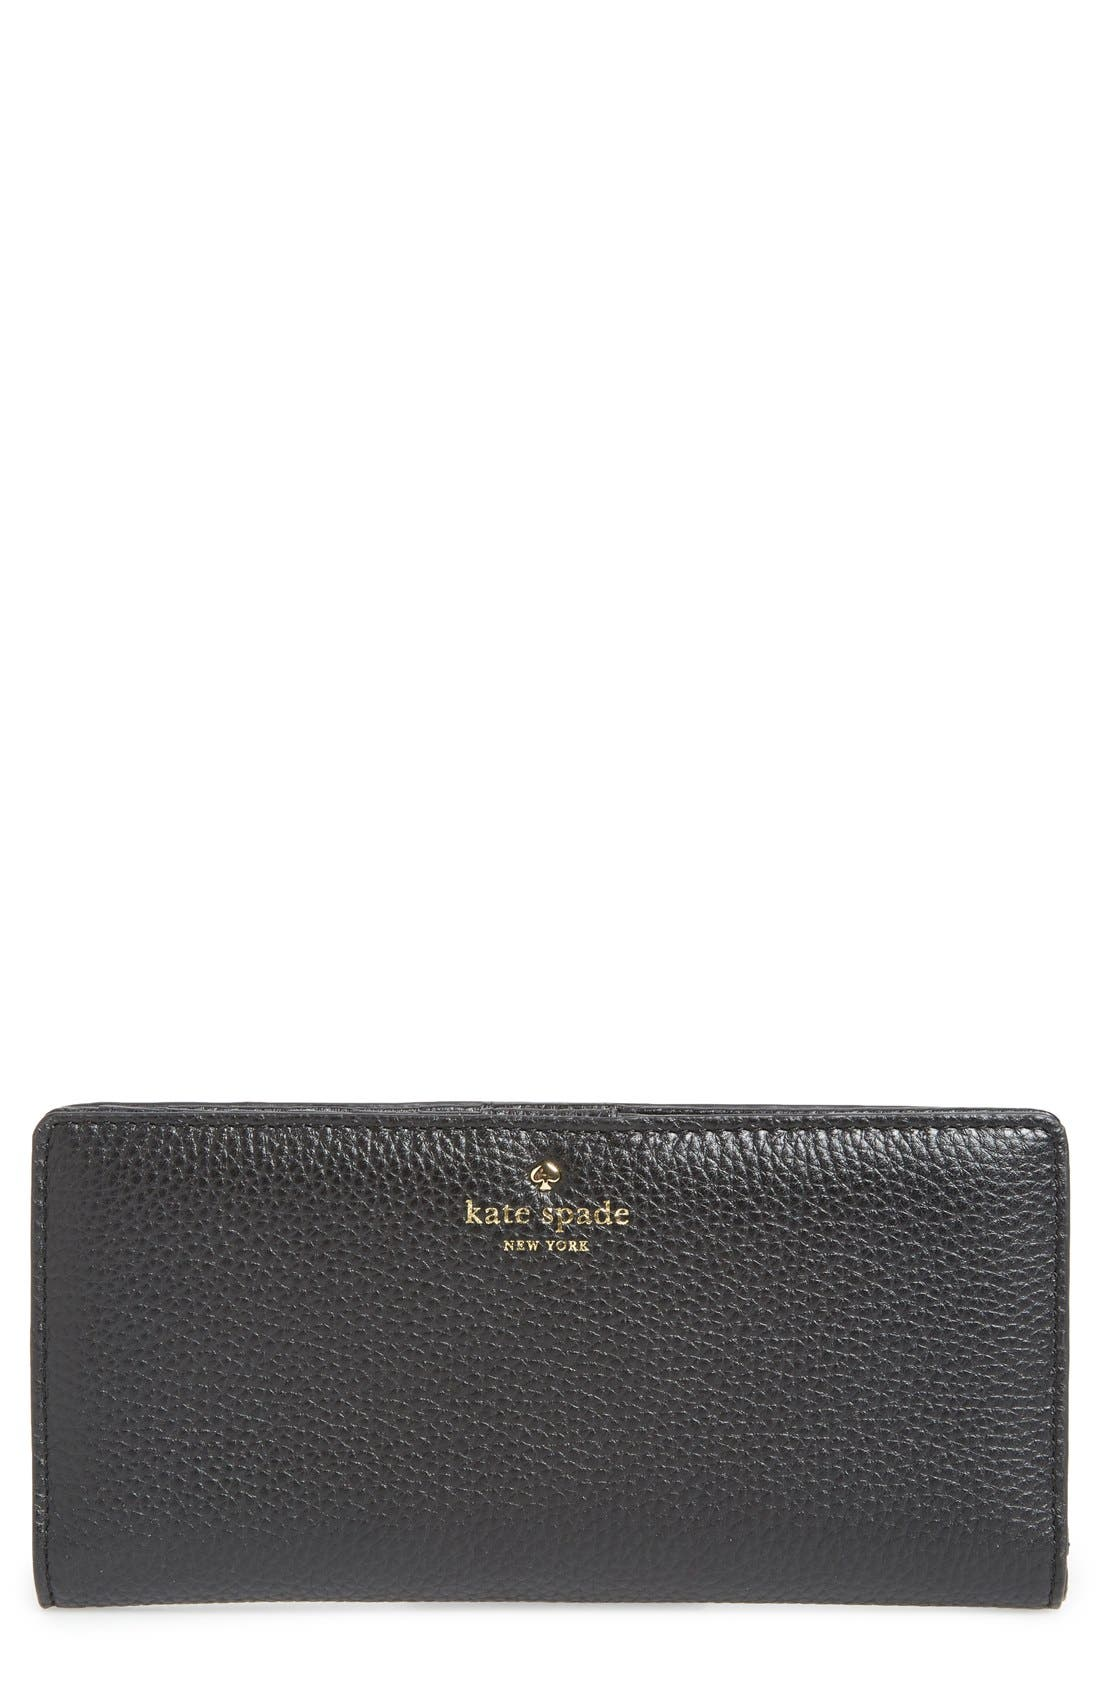 Alternate Image 1 Selected - kate spade new york 'cobble hill - large stacy' leather wallet